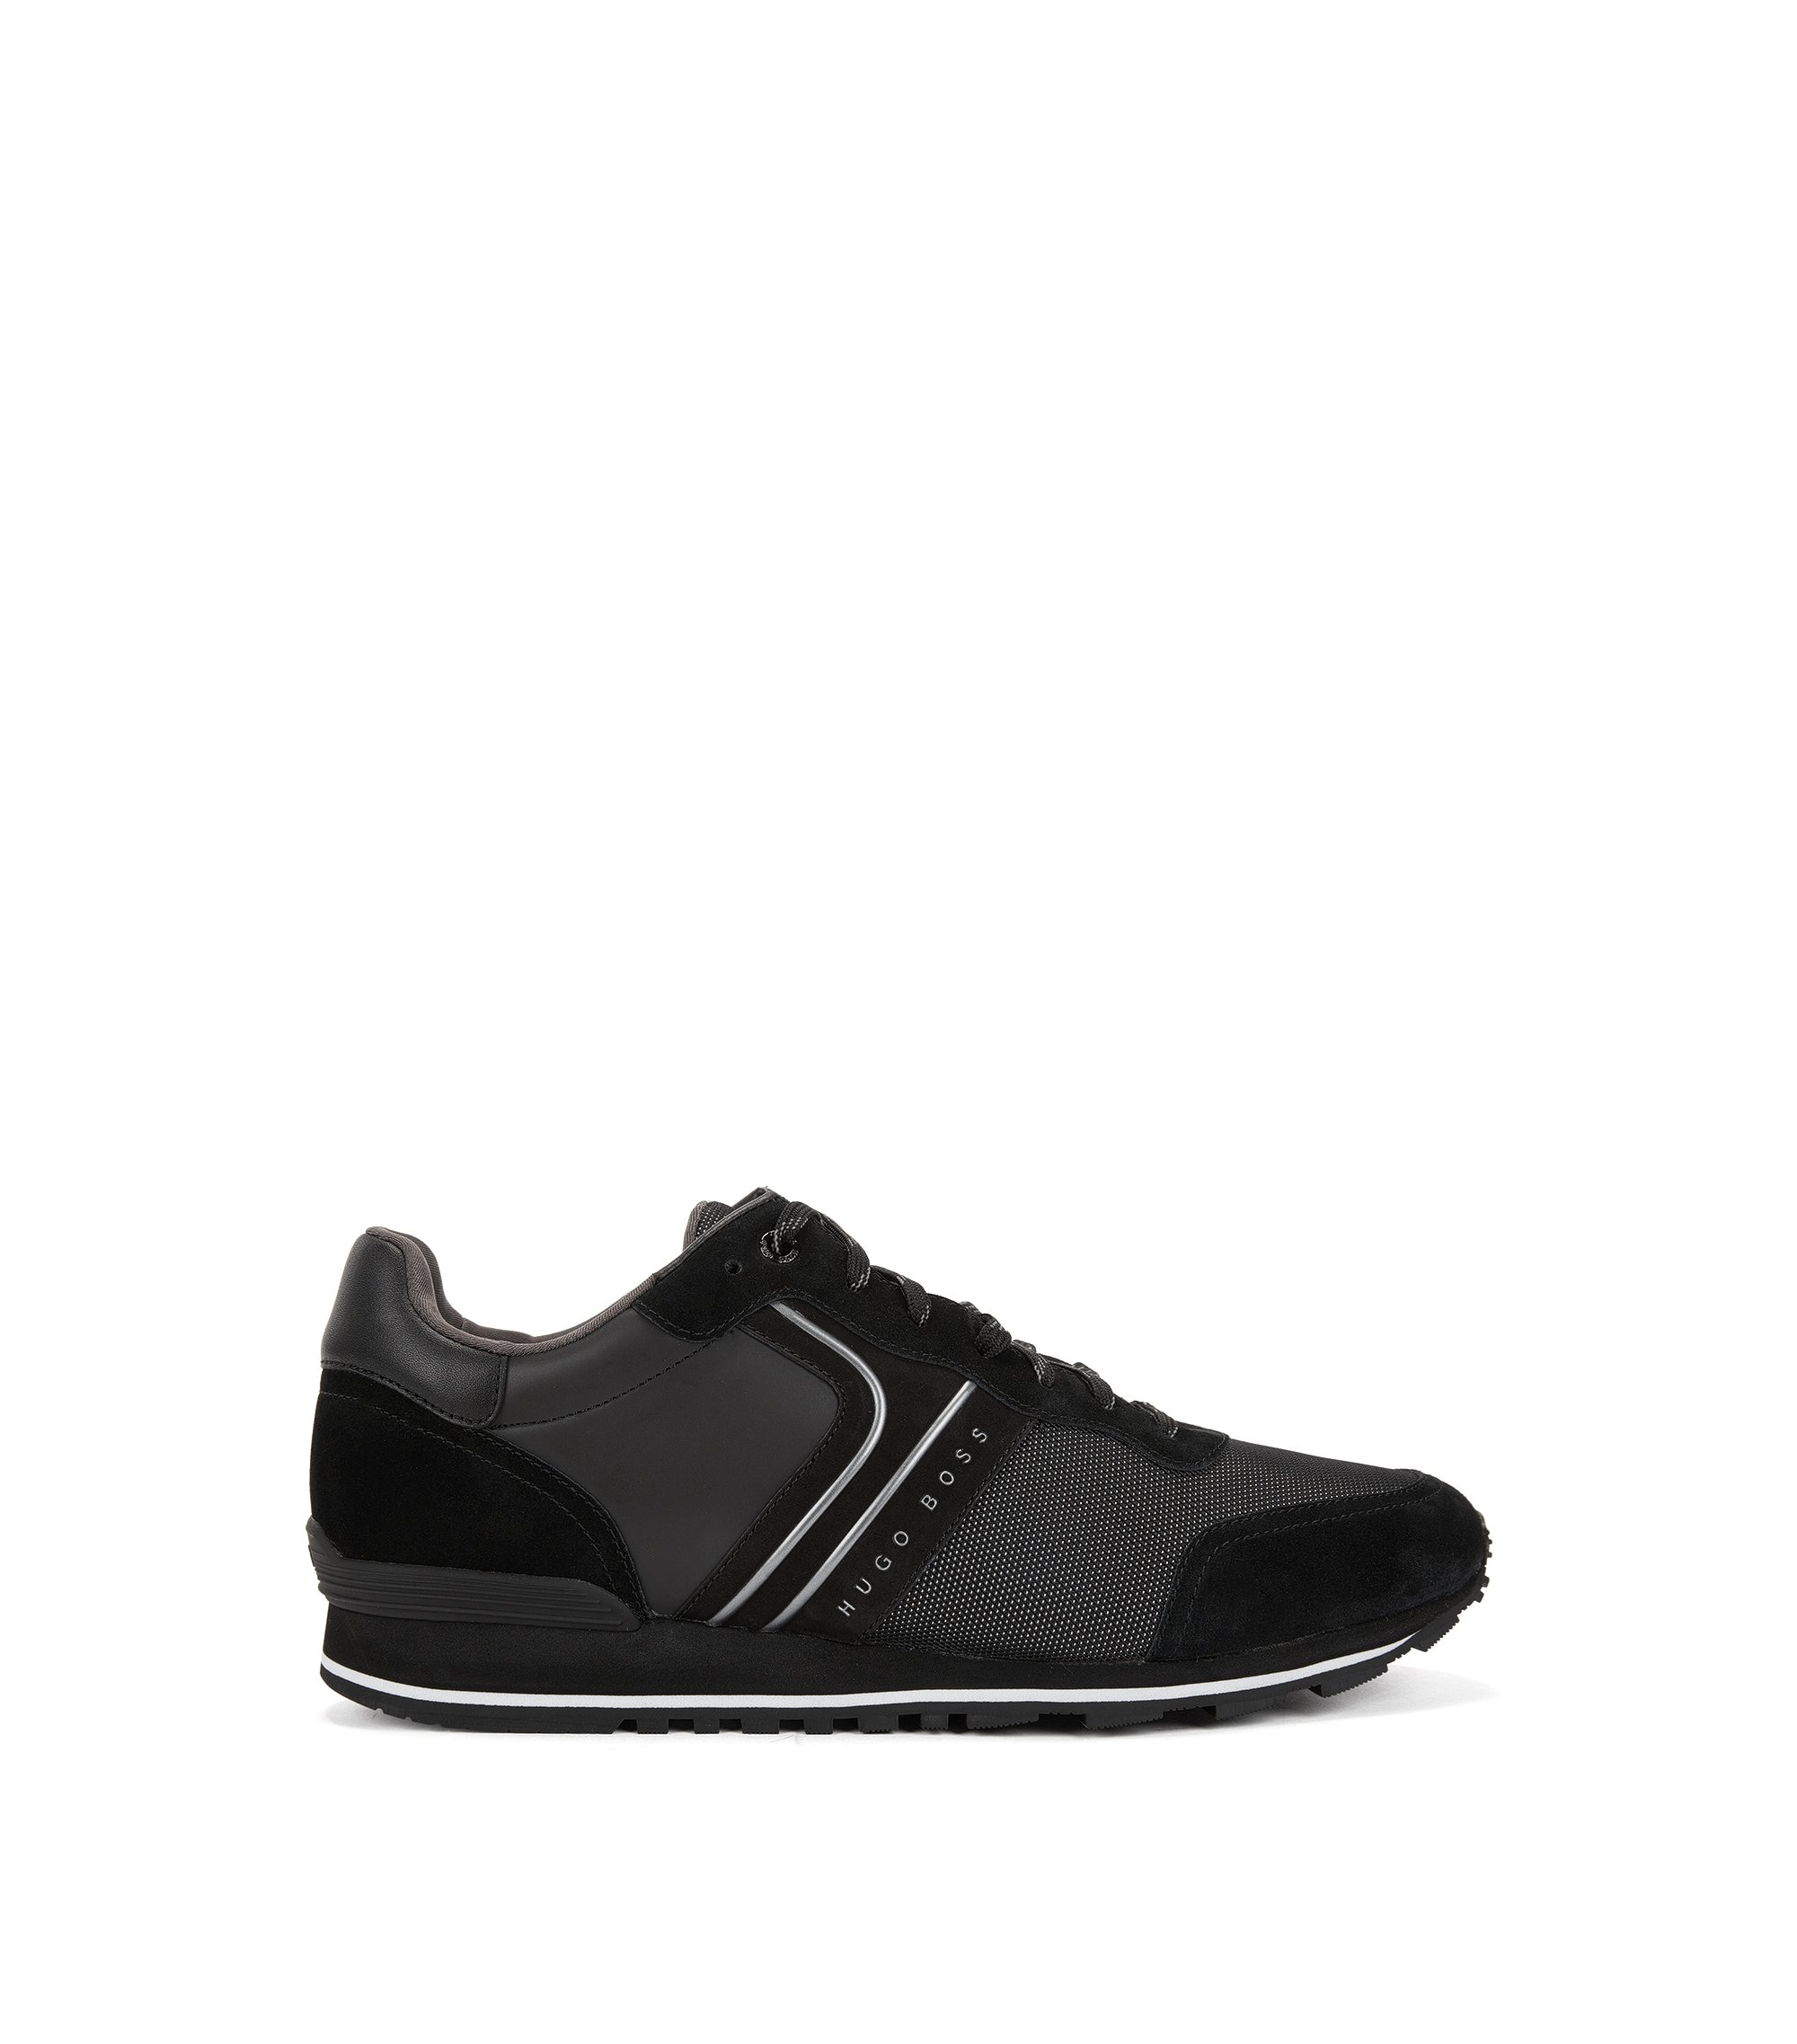 Retro-style running trainers with hybrid uppers, Black